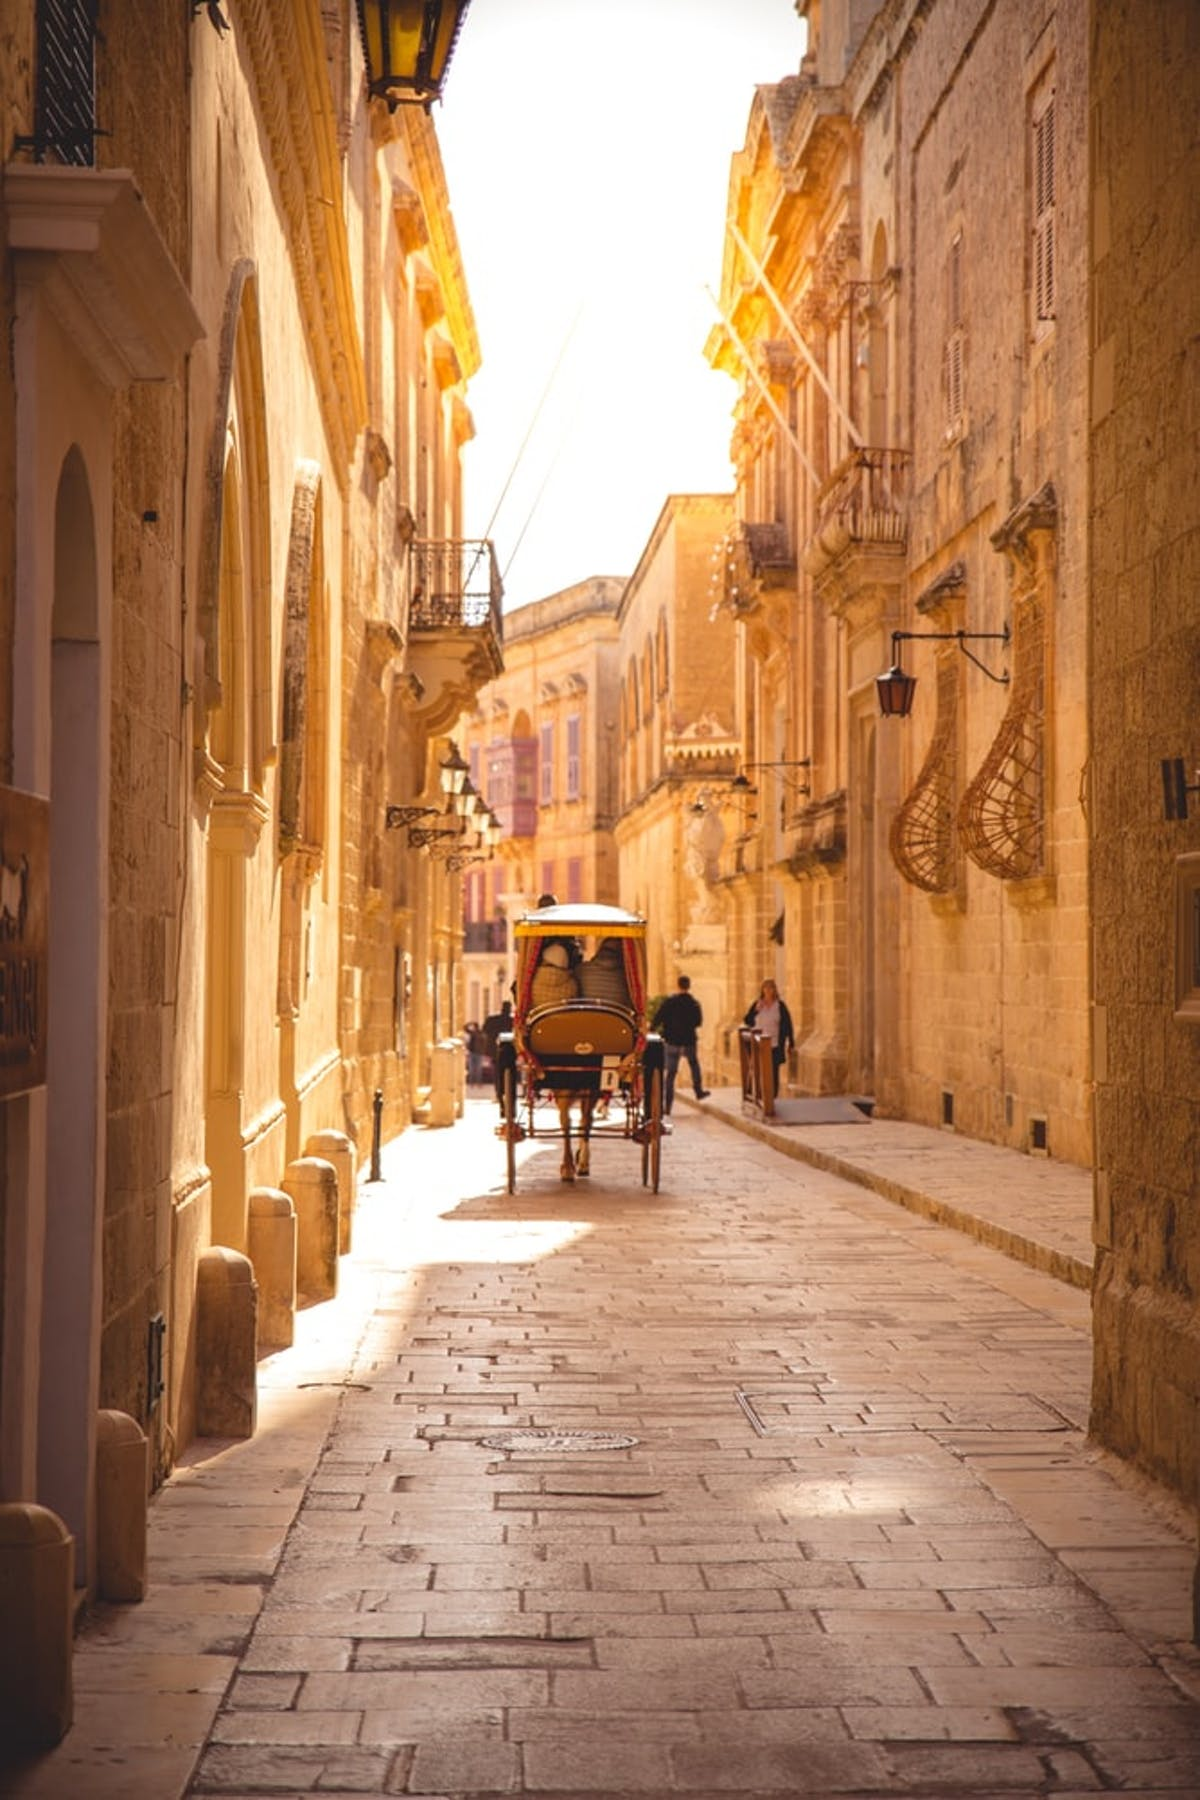 Small alley of Mdina with a horse-drawn carriage in walk